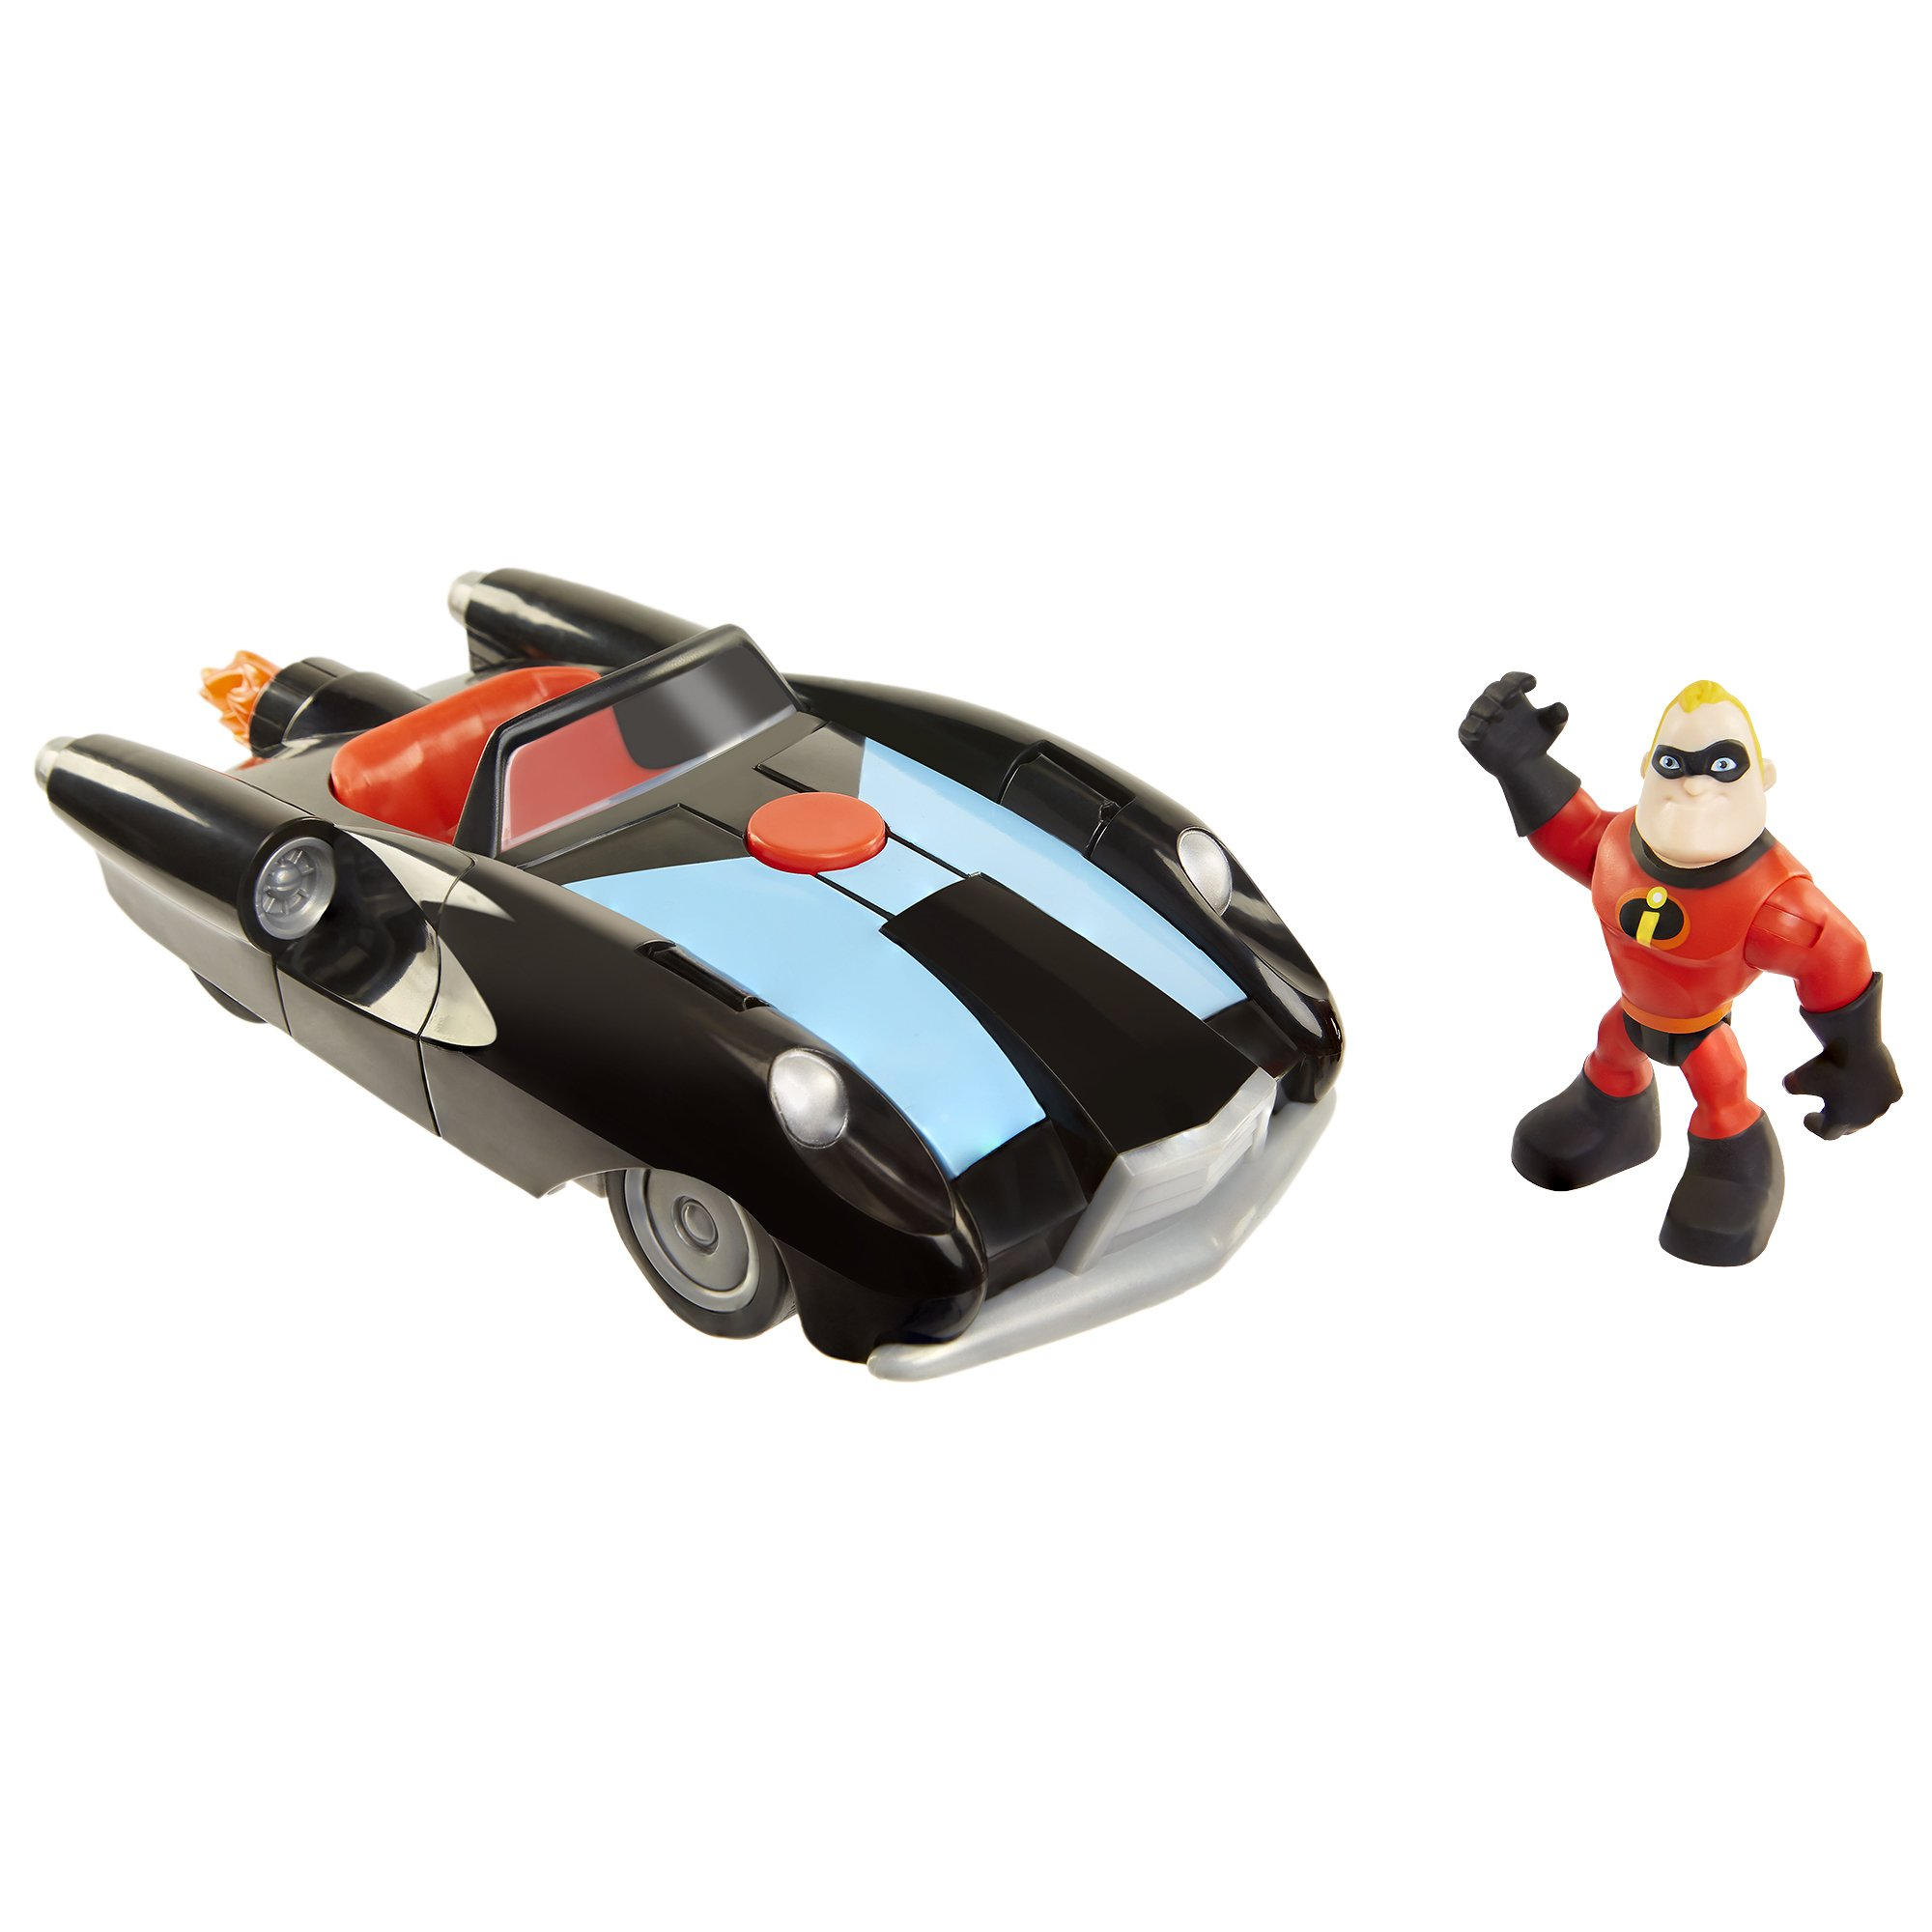 The Incredibles 2 Incredibile Car & Mr. Incredible Action Figure 2-Piece Set, Black Car and Red Mr. Incredible Figure, Medium by The Incredibles 2 (Image #8)